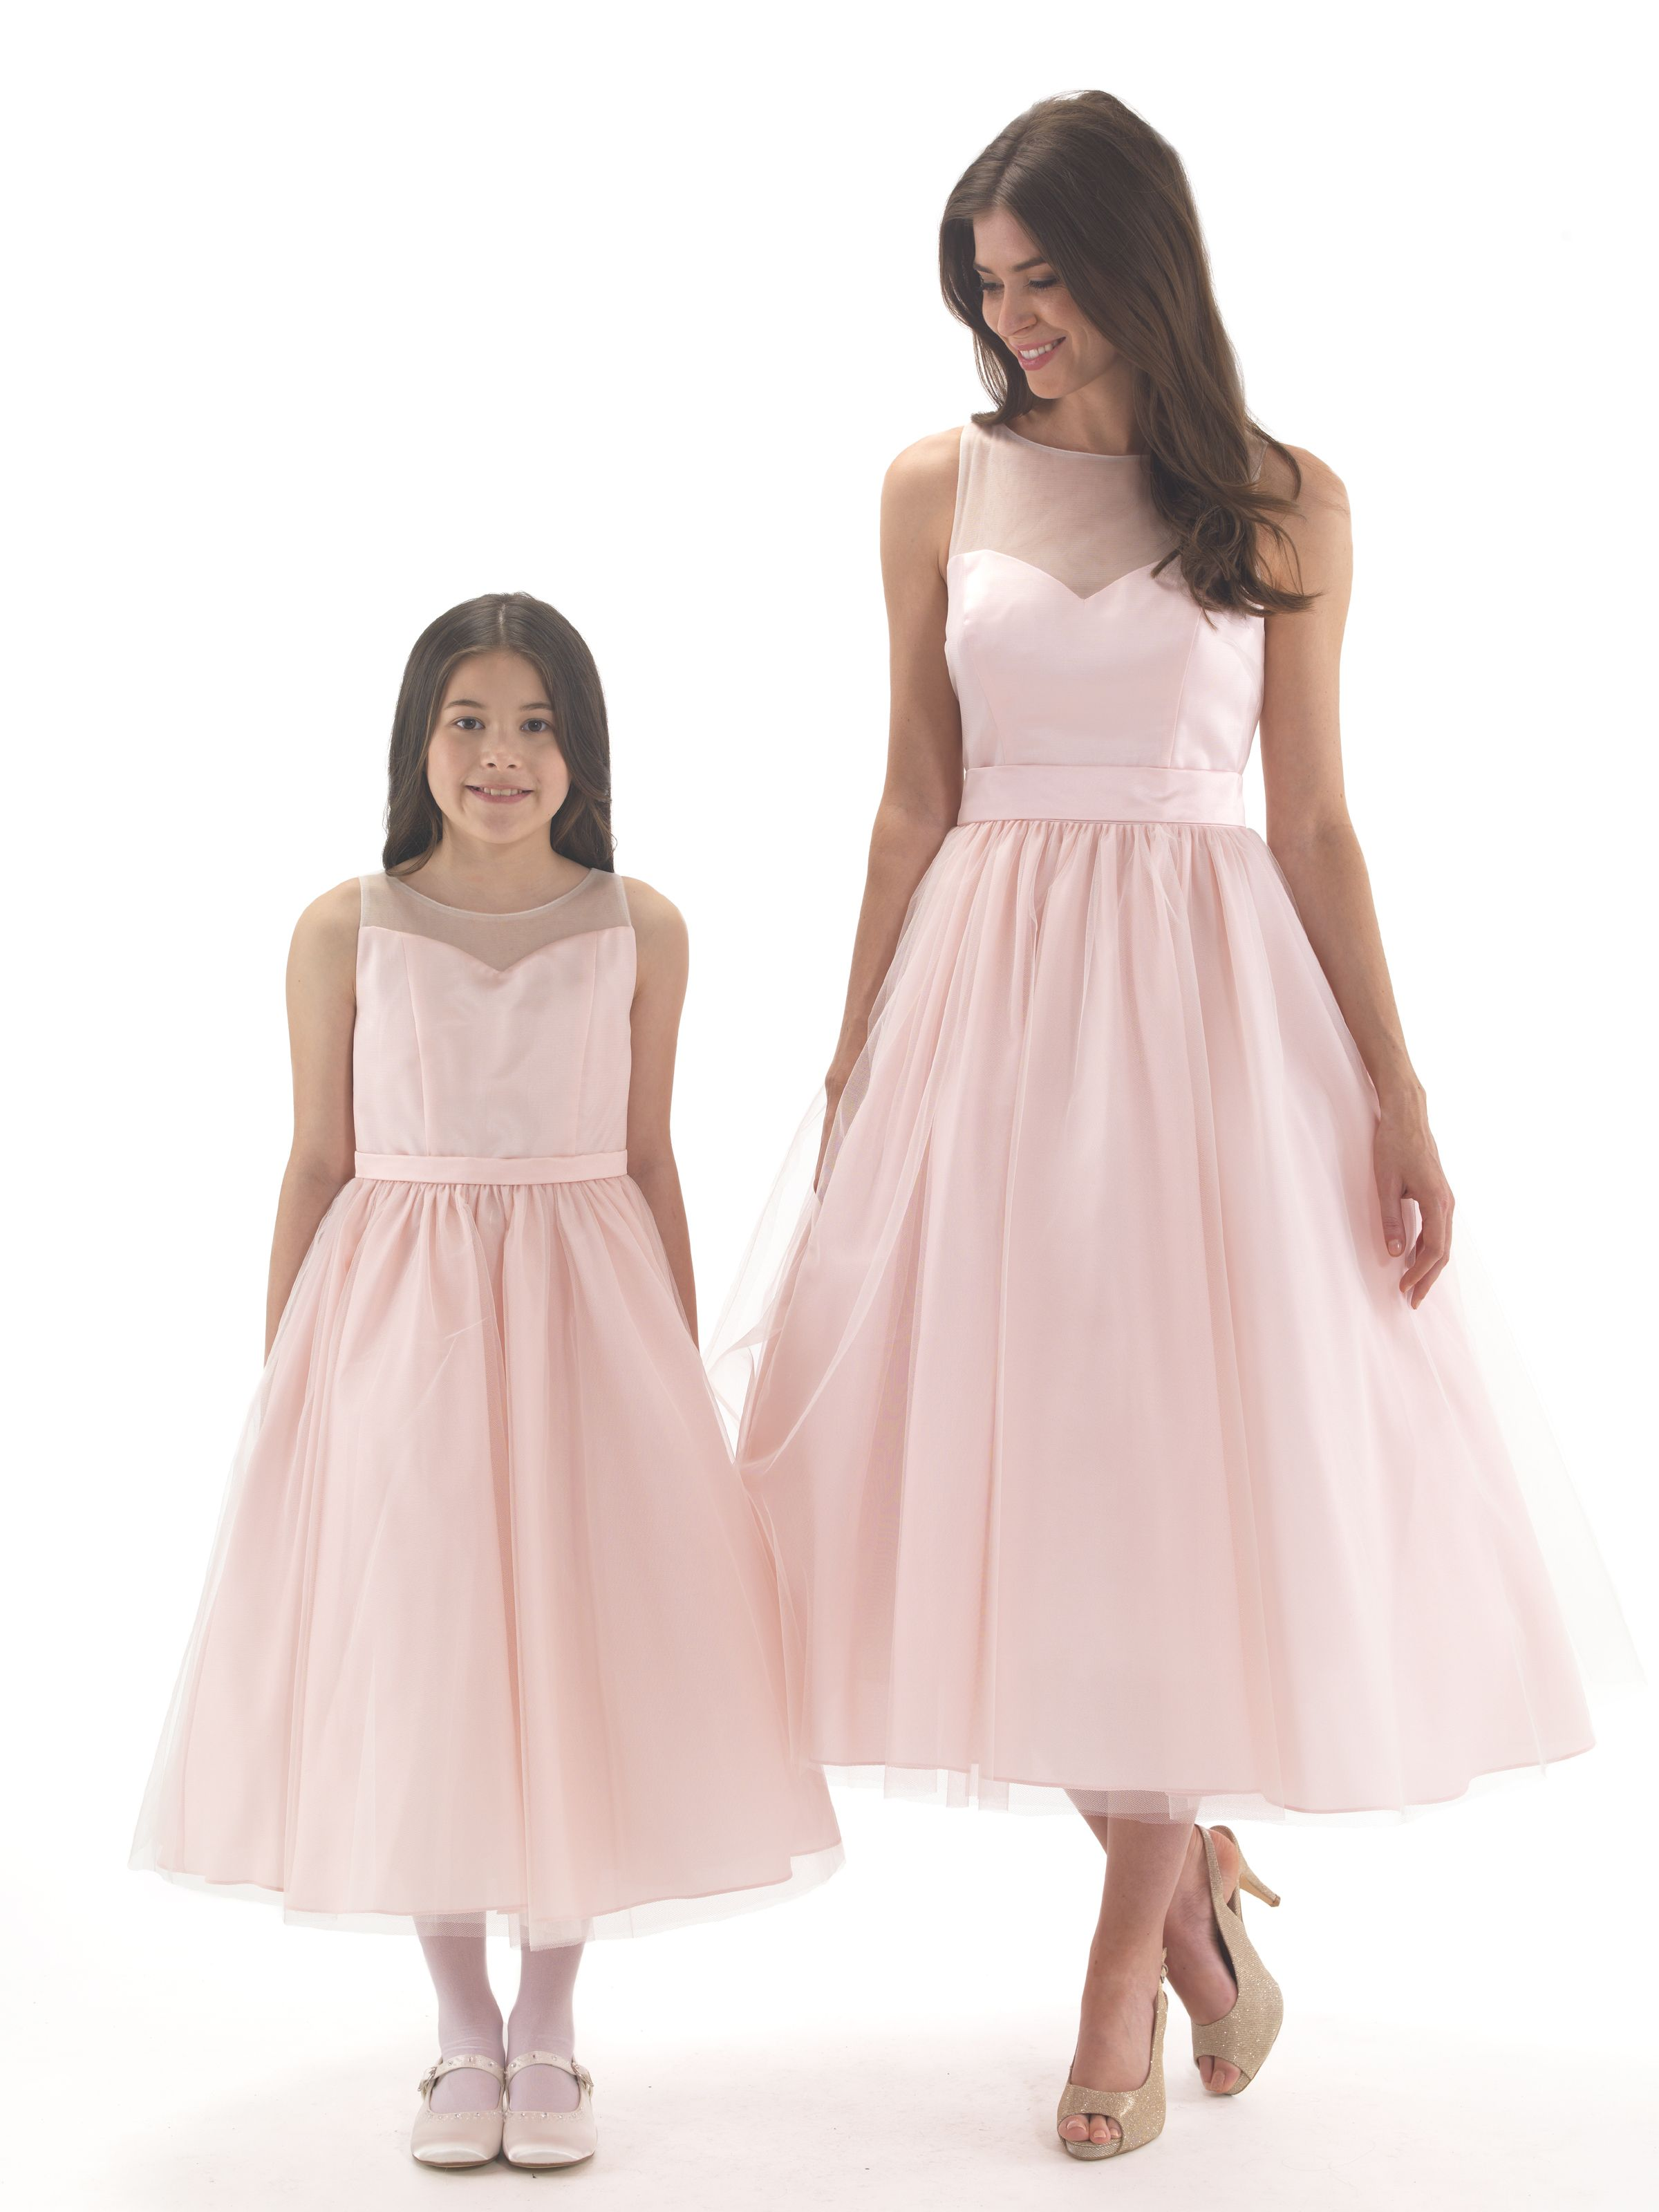 Linzi jay en395 ballerina length tulle bridesmaid dress linzi jay en395 ballerina length tulle bridesmaid dress ombrellifo Image collections